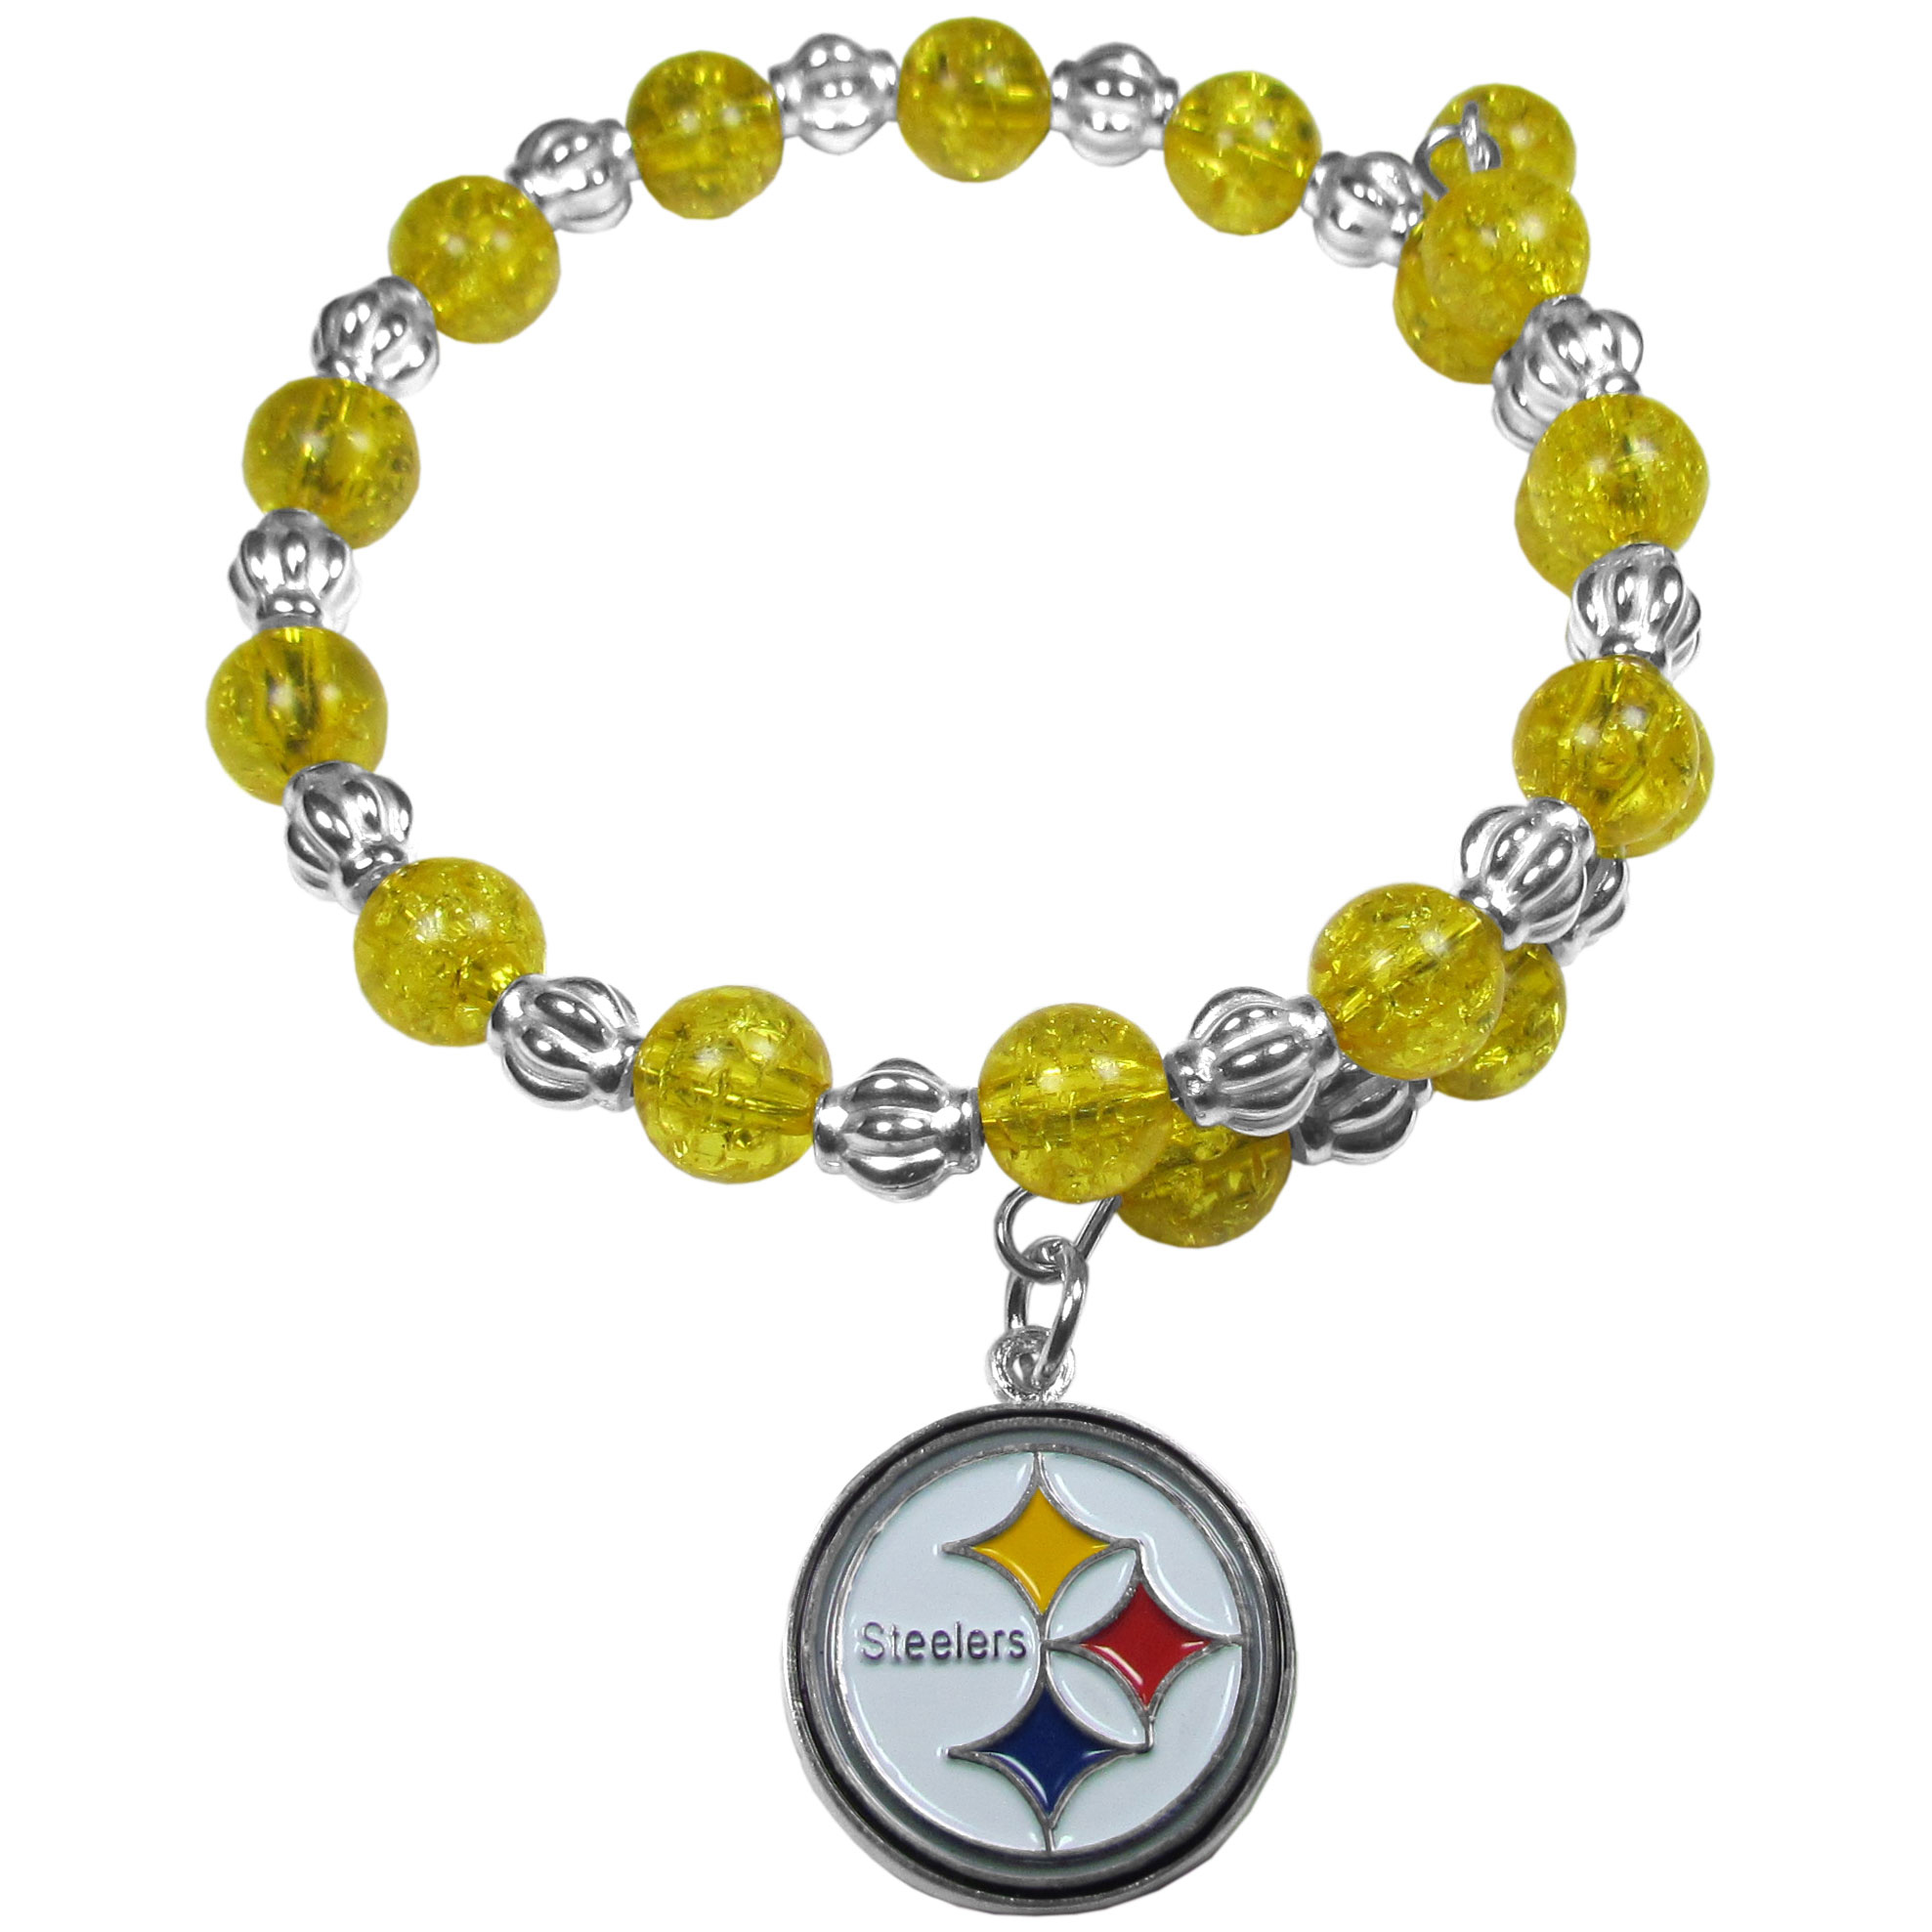 Pittsburgh Steelers Bead Memory Wire Bracelet - Our Pittsburgh Steelers memory wire bead bracelet is trendy way to show off your love of the game. The double wrap bracelet is completely covered in 7.5 mm crystals that are broken up with silvertoned beads creating a designer look with a sporty twist. The bracelet features a fully cast, metal team charm that has expertly enameled team colors. This fashion jewelry piece is a must-have for the die-hard fan that chic look that can dress up any outfit.